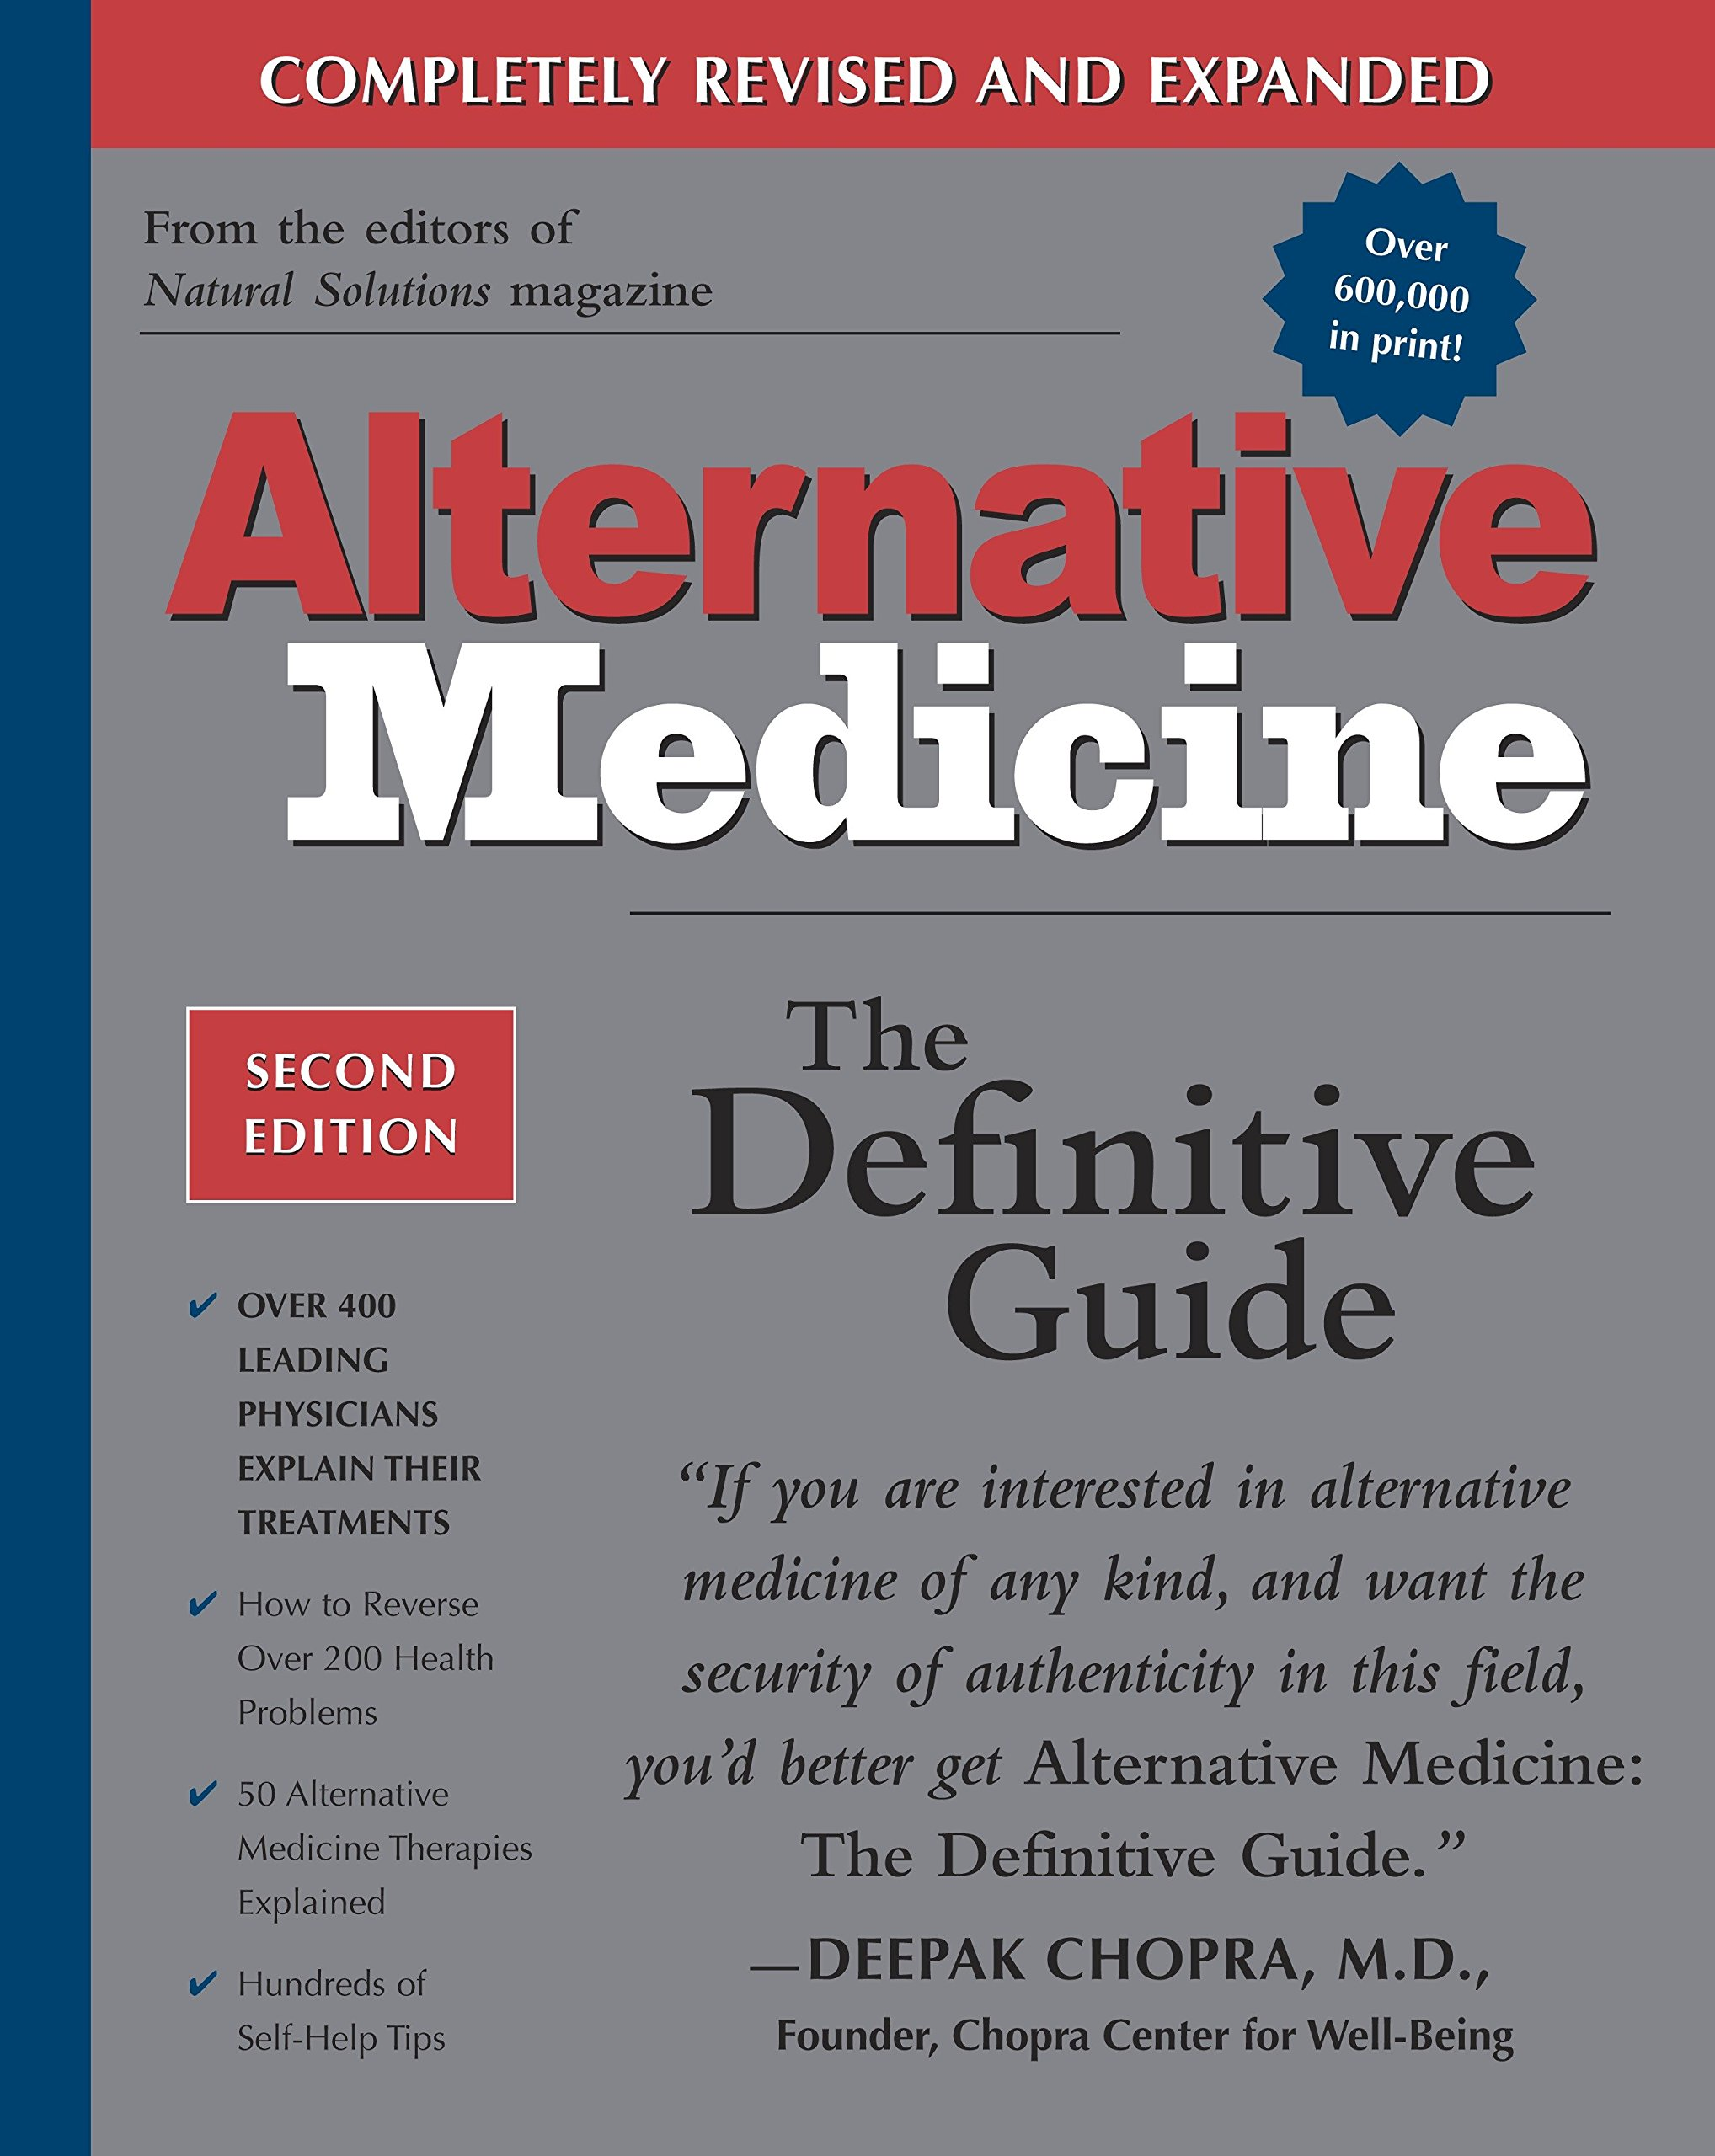 Alternative Medicine The Definitive Guide.jpg